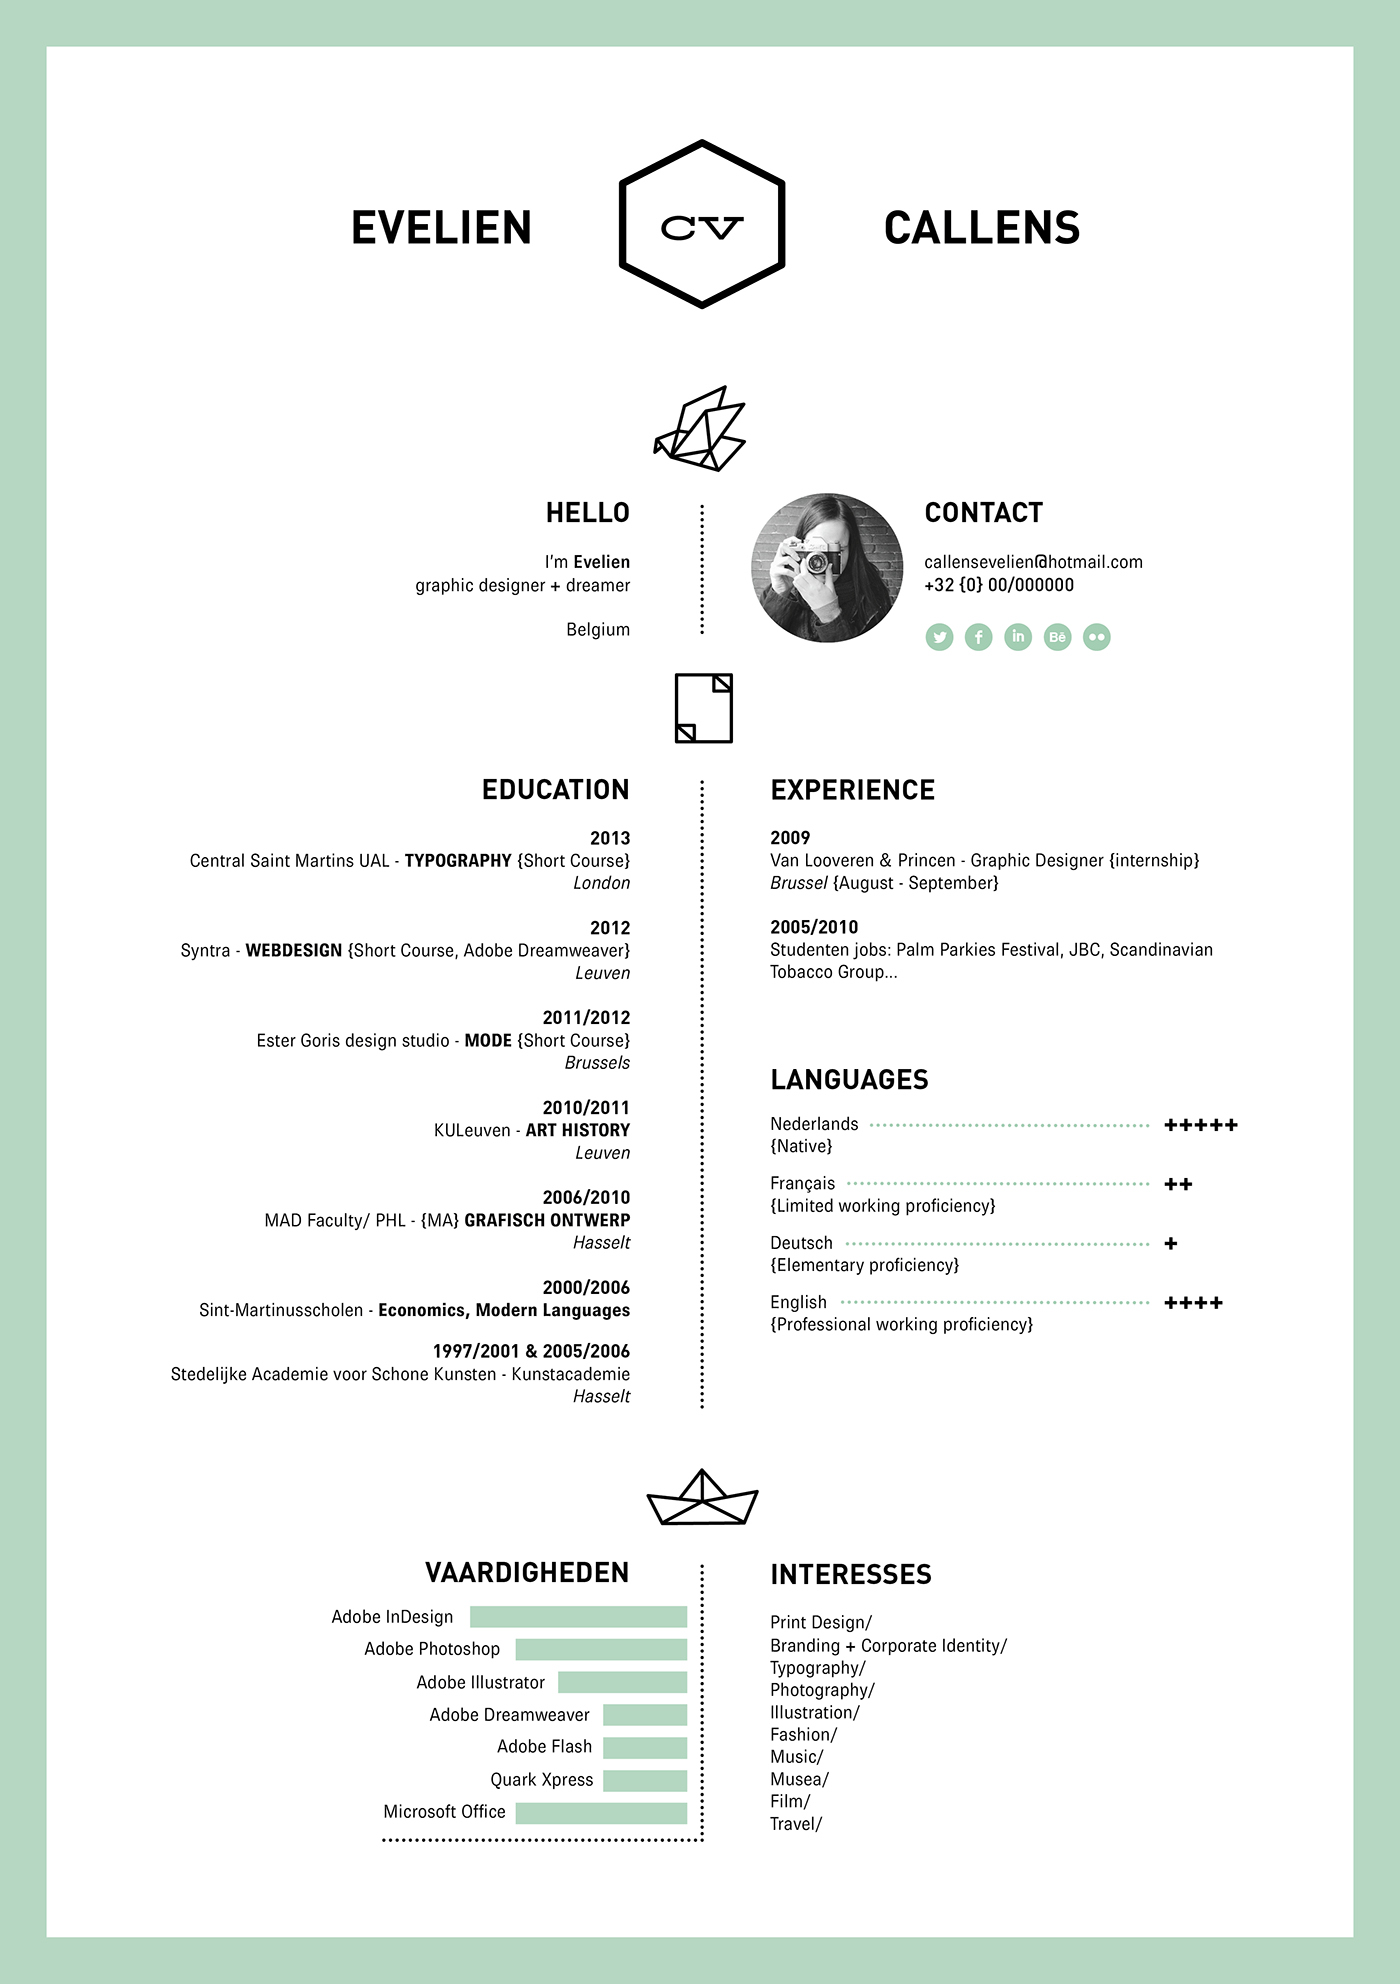 a good example of a graphic designer resume